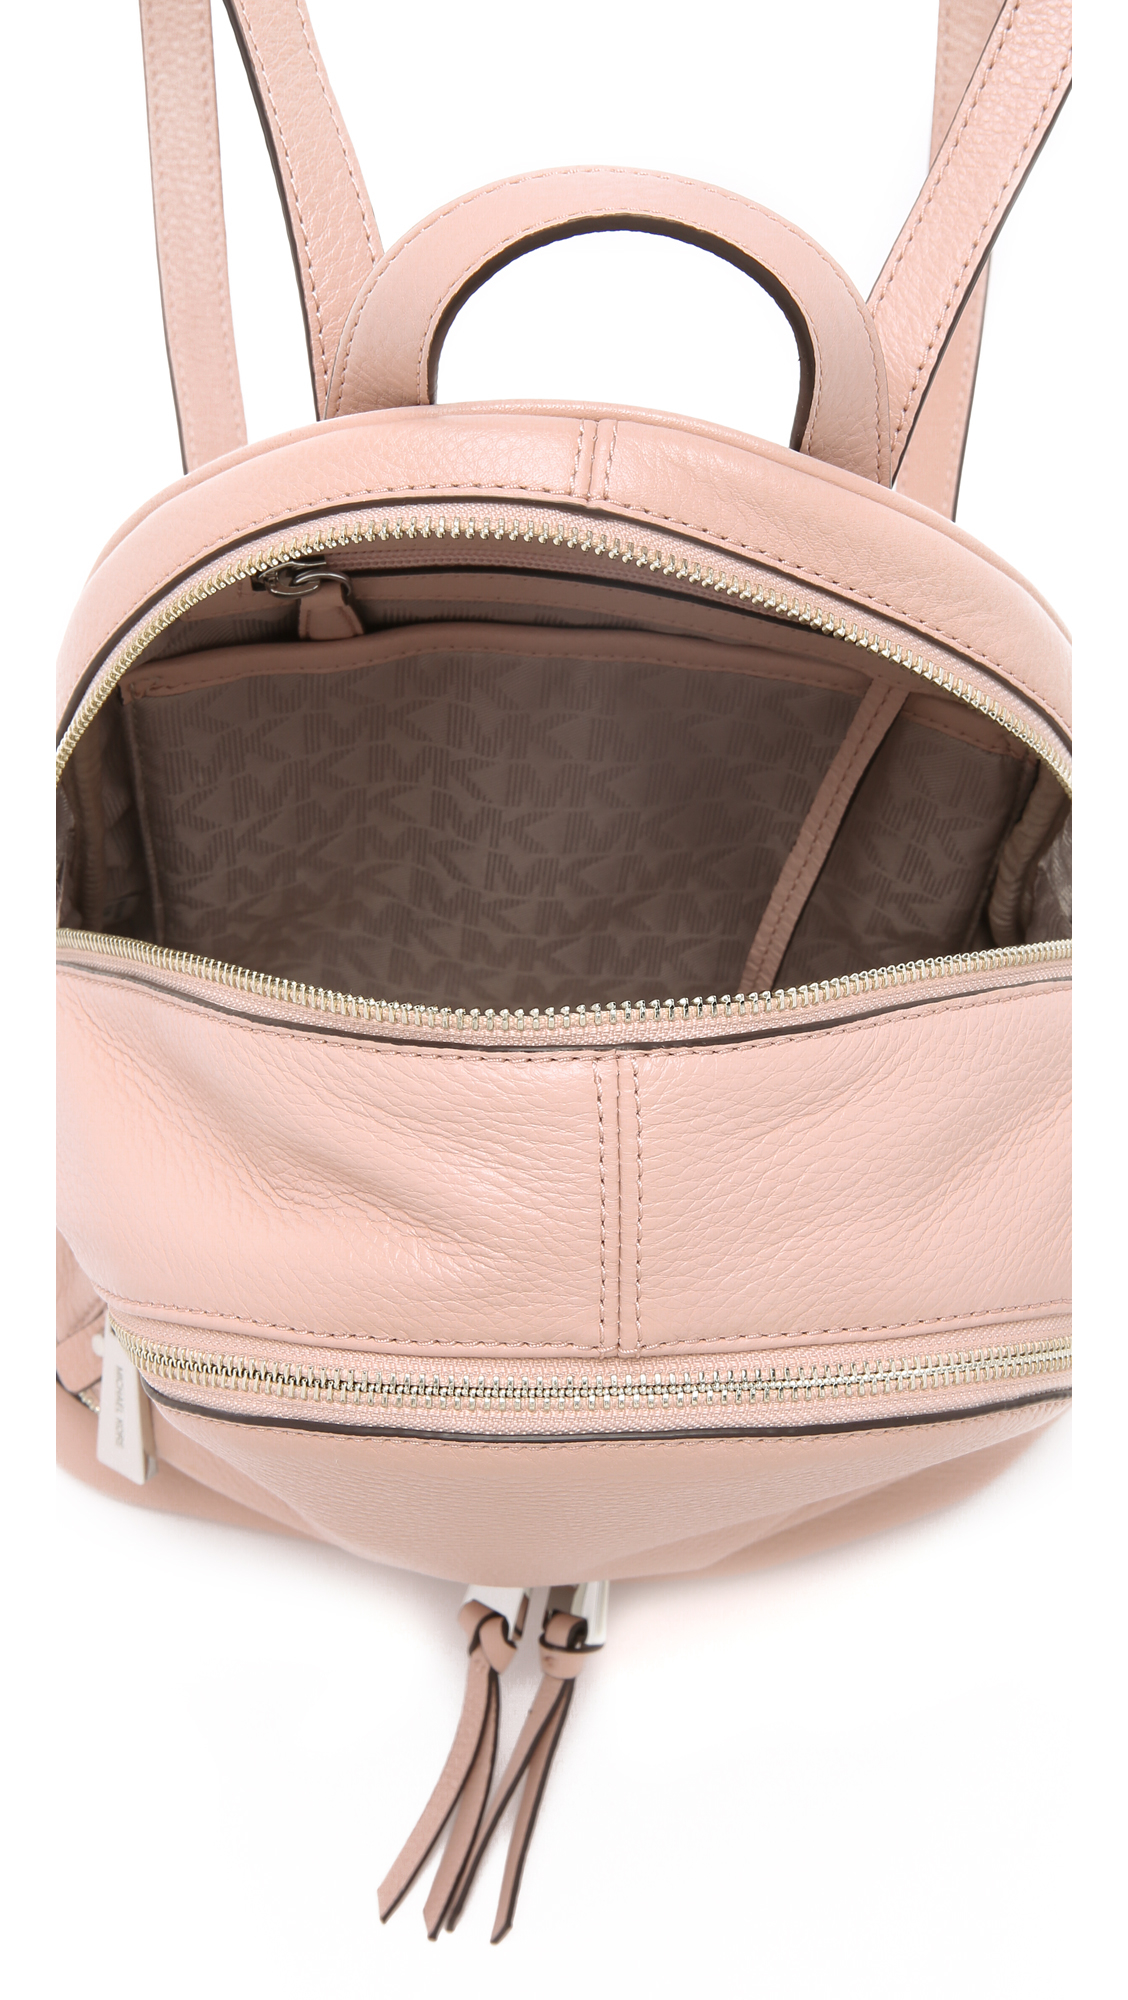 Michael michael kors Rhea Small Backpack - Ballet in Pink | Lyst